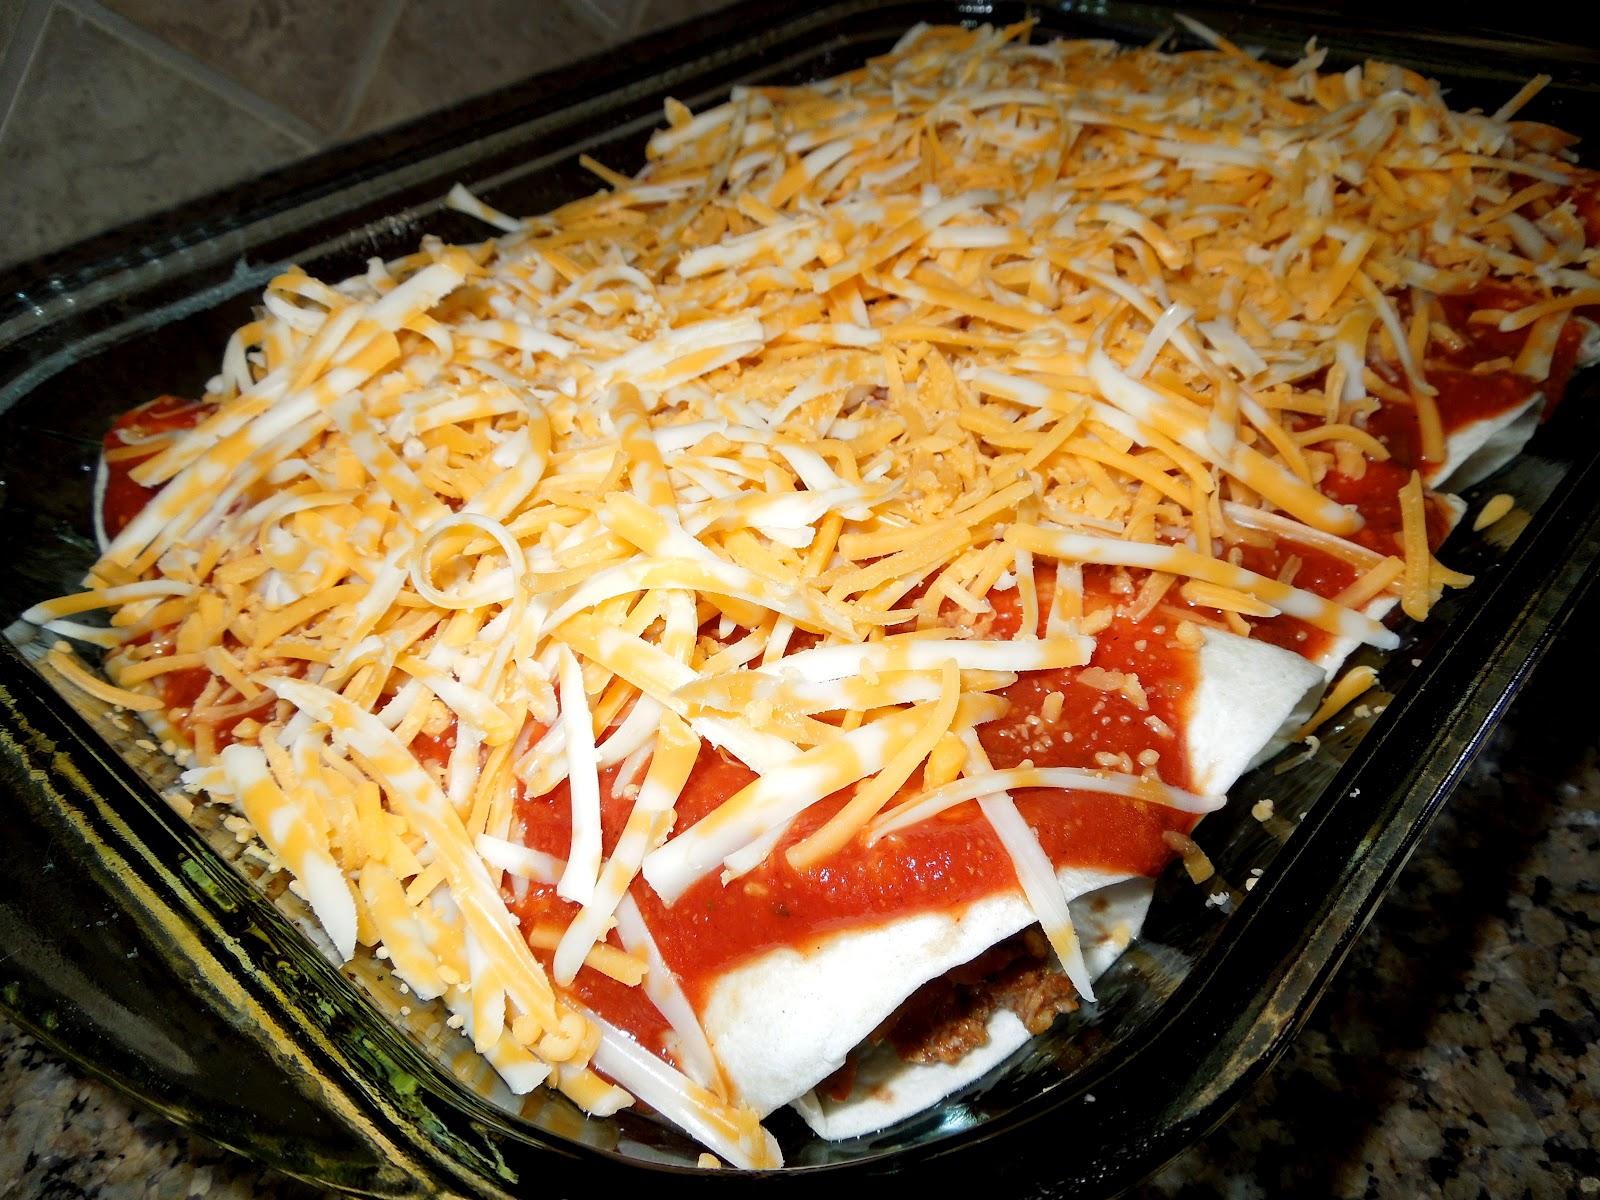 Shredded Beef Enchiladas With Homemade Enchilada Sauce Recipes ...